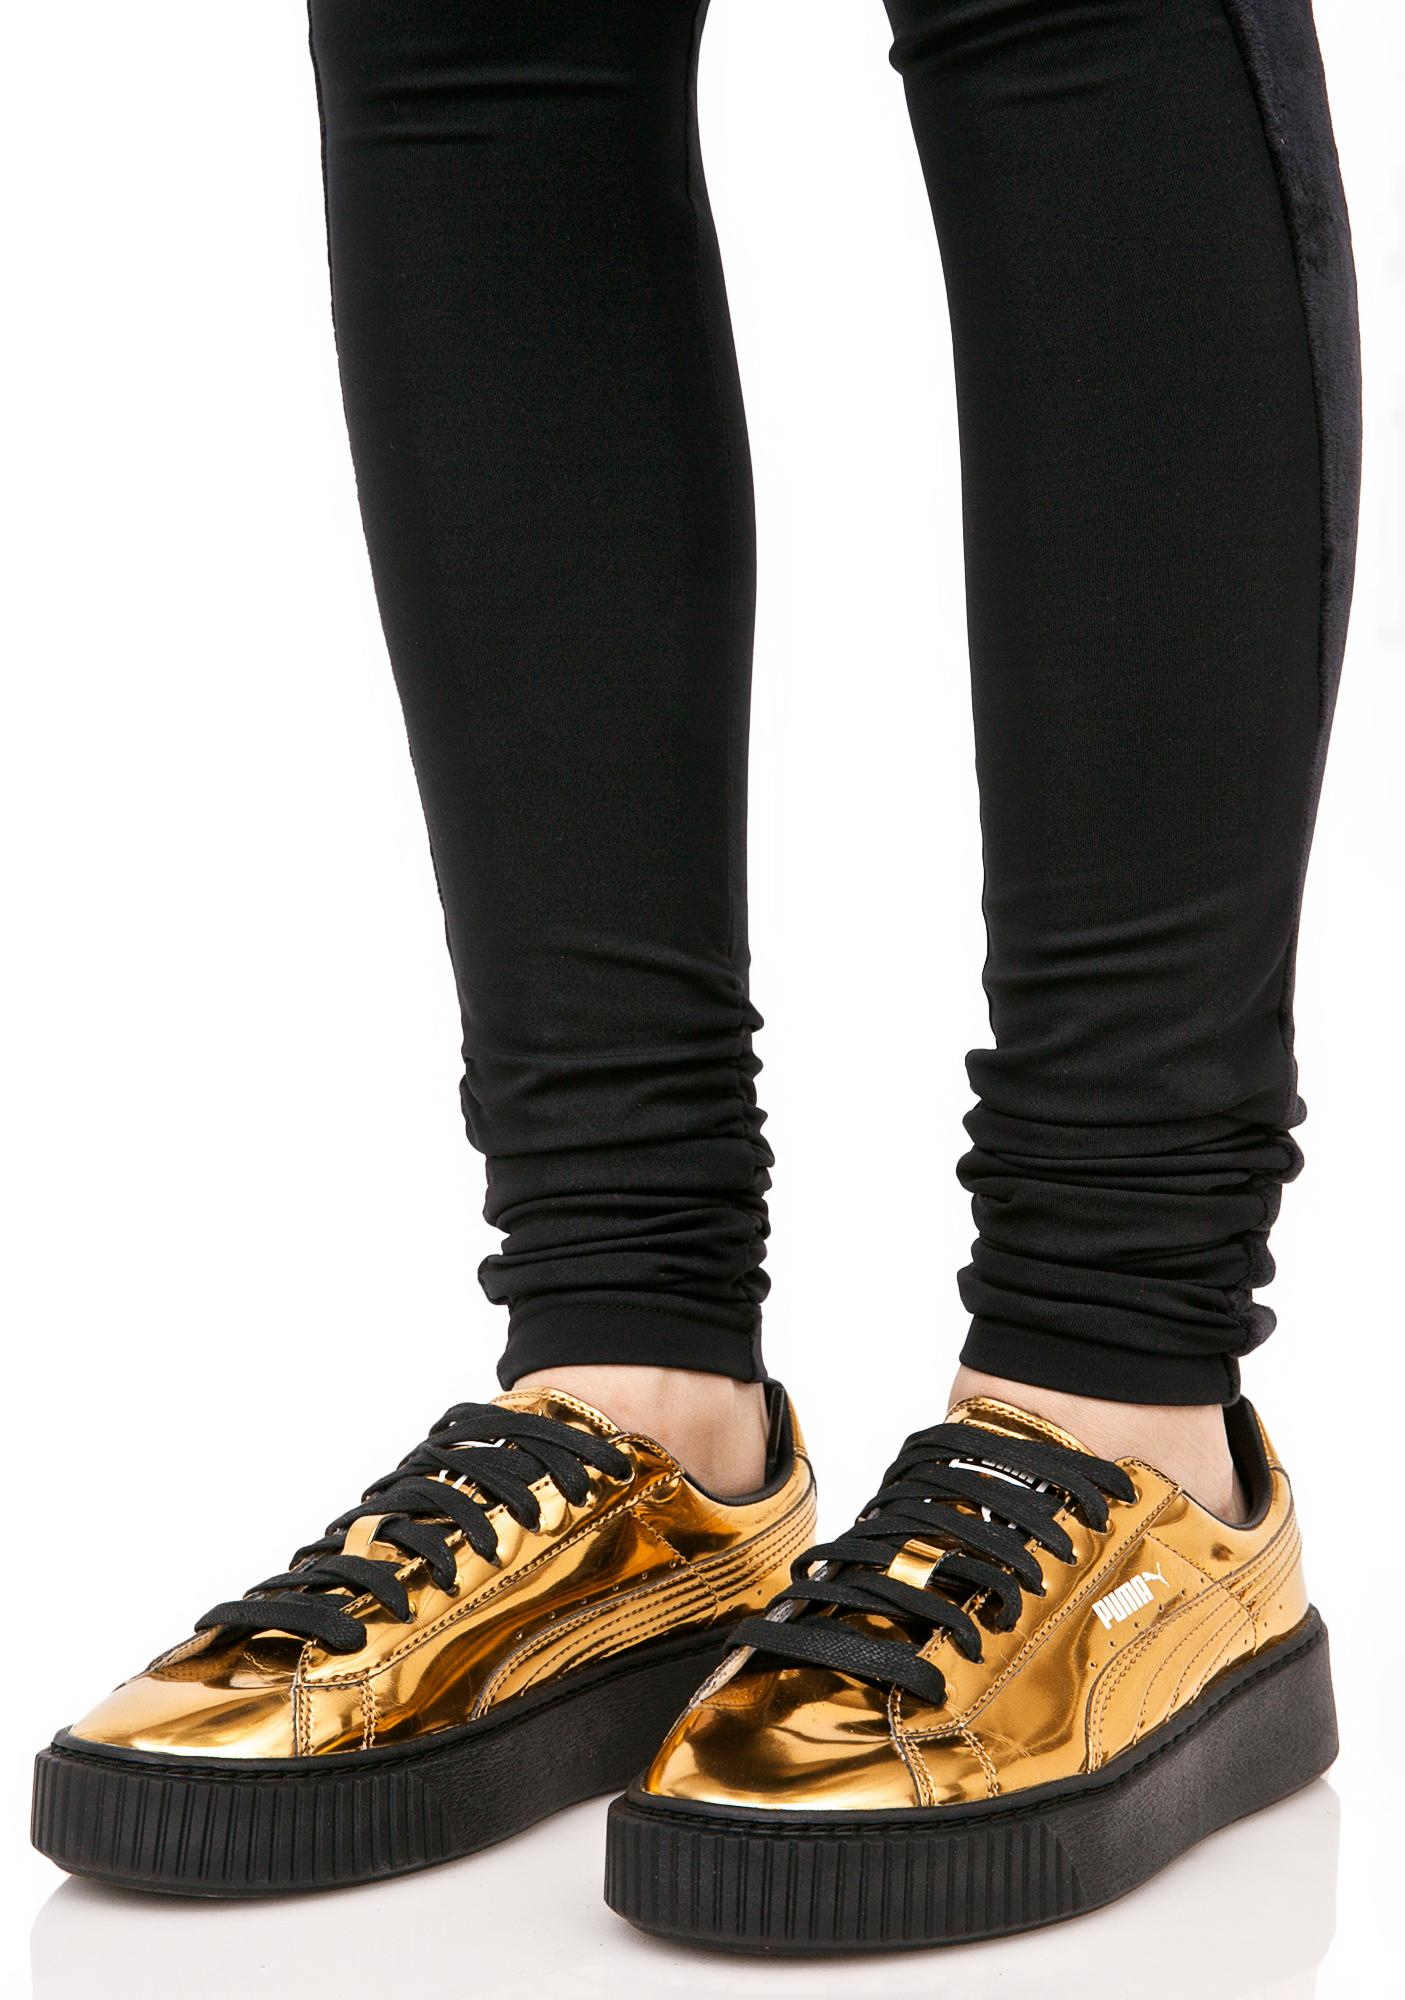 PUMA Gold Metallic Creeper Sneakers